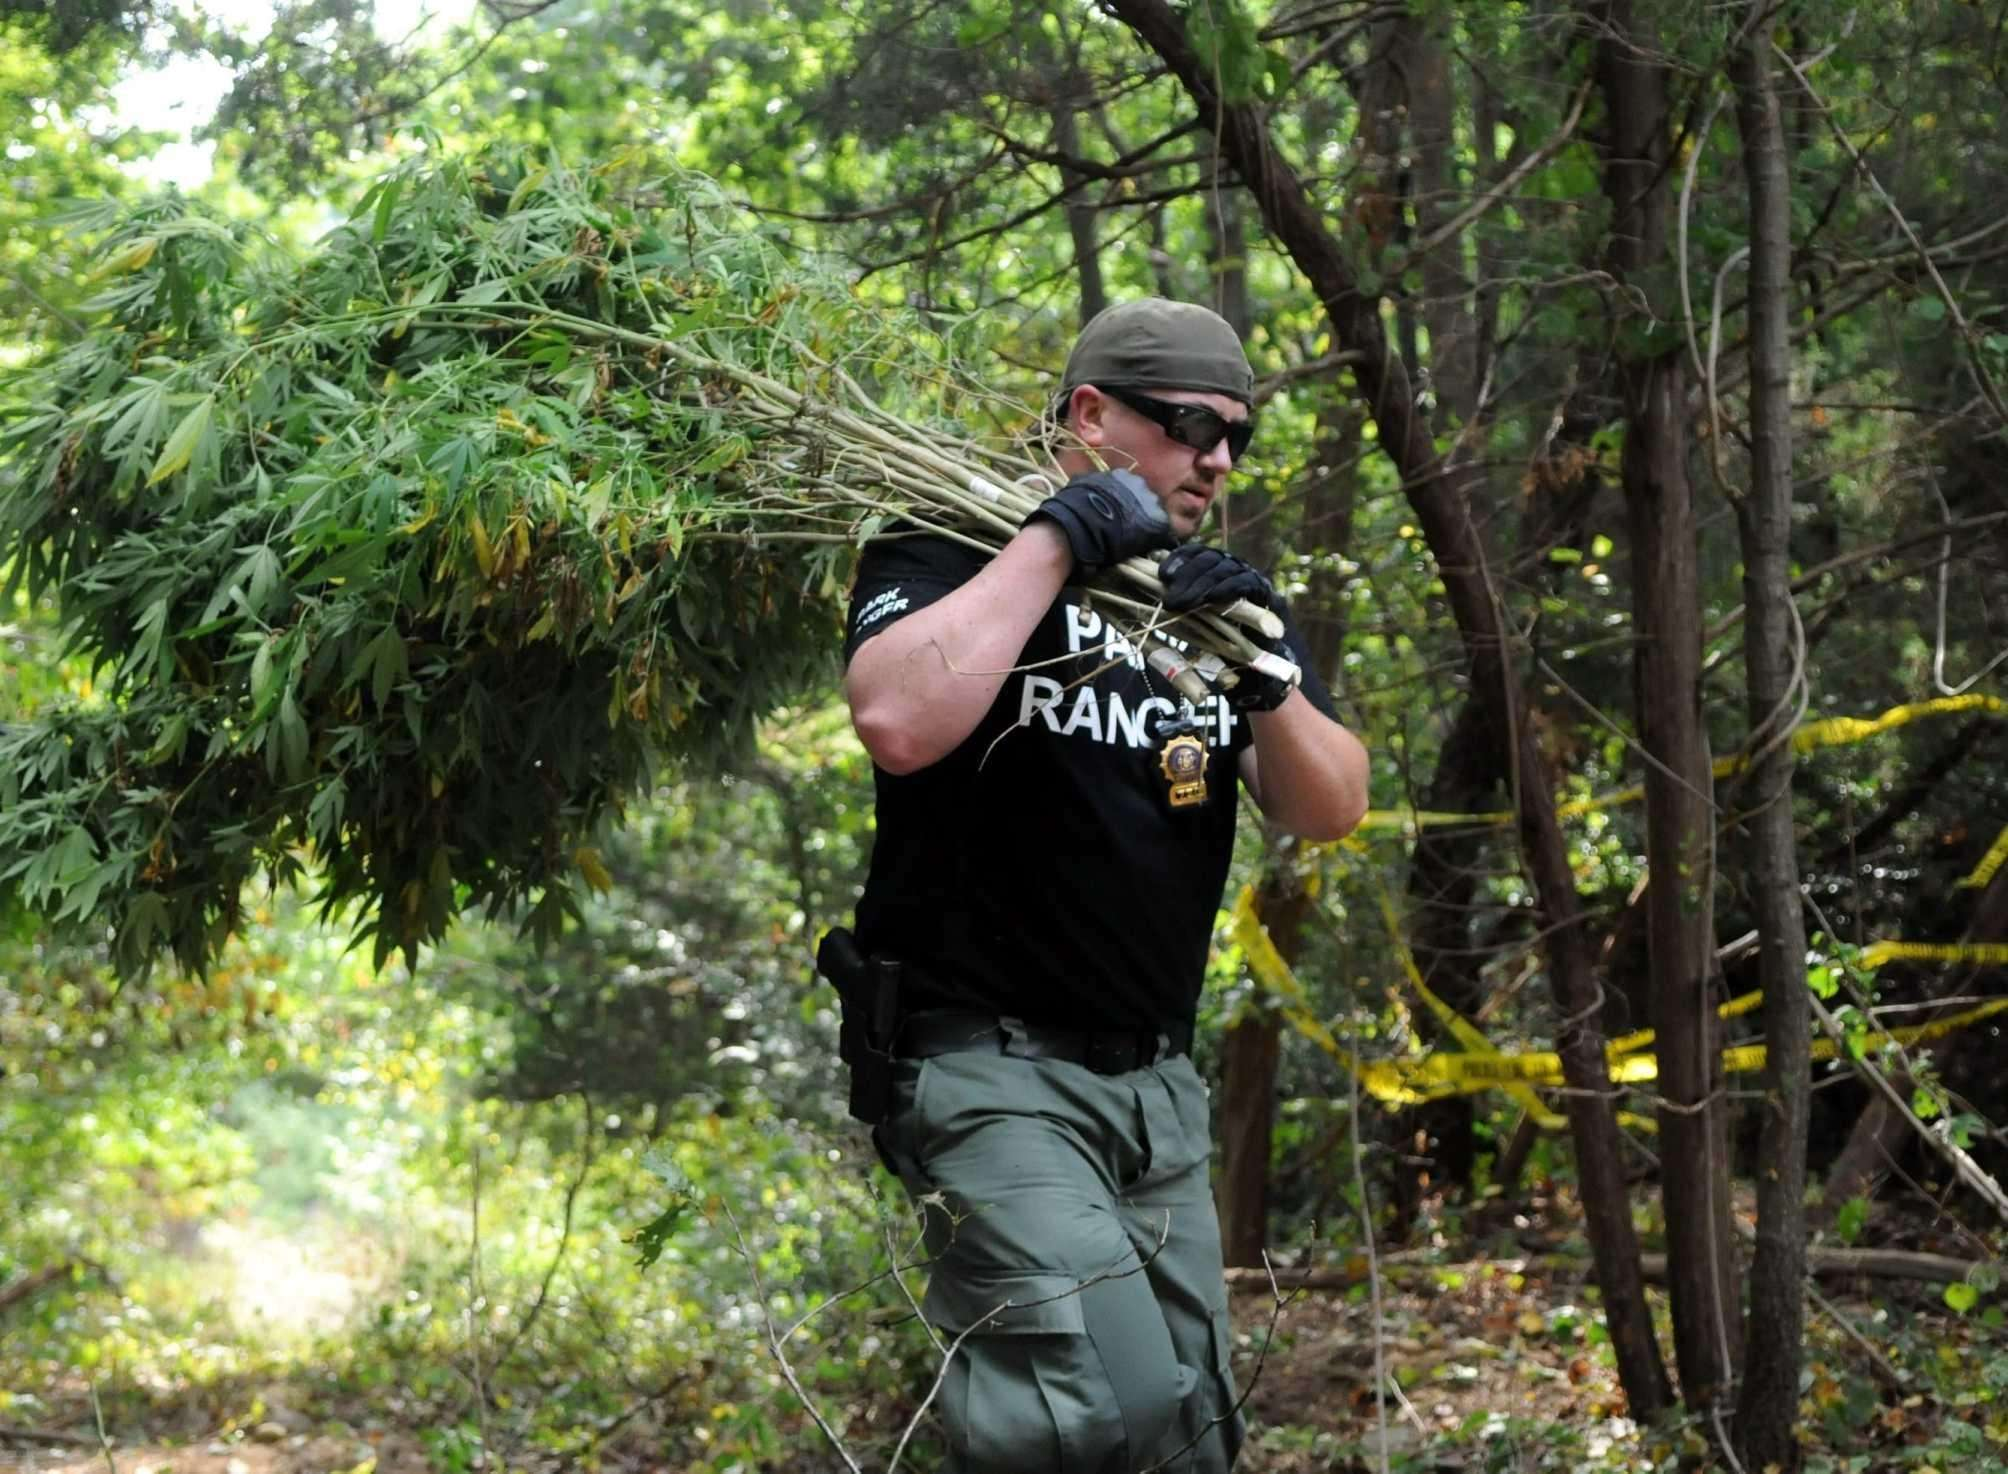 A park ranger removes marijuana plants from a growing operation in a Commack sump on Sept. 12, 2013. Credit: James Carbone